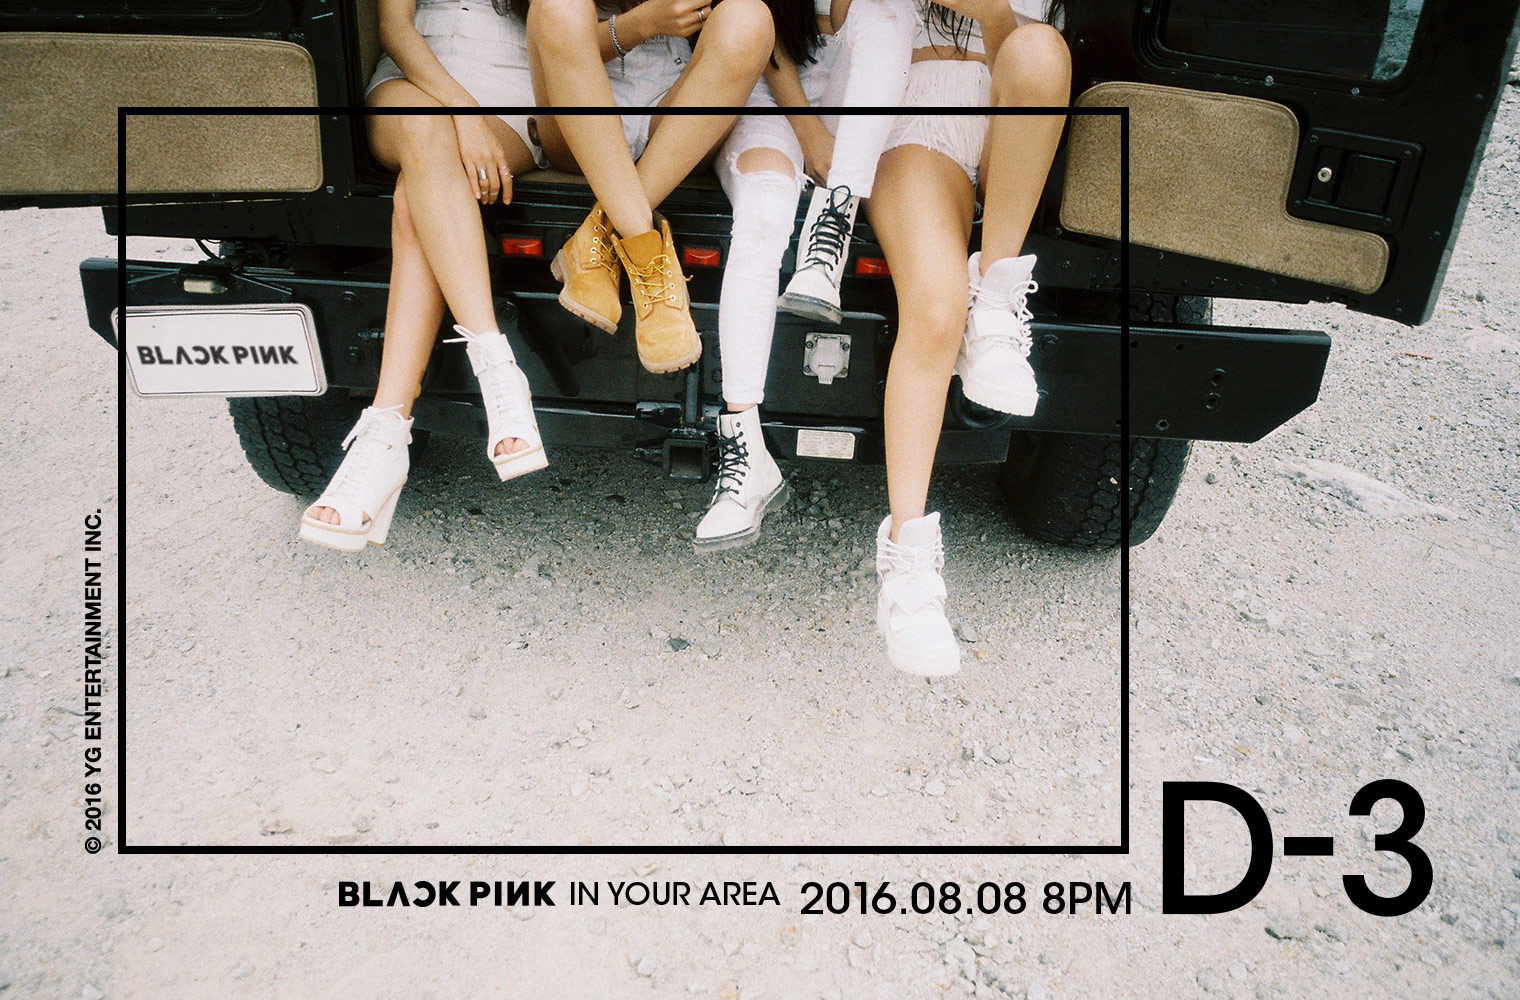 BLACKPINK group teaser 2